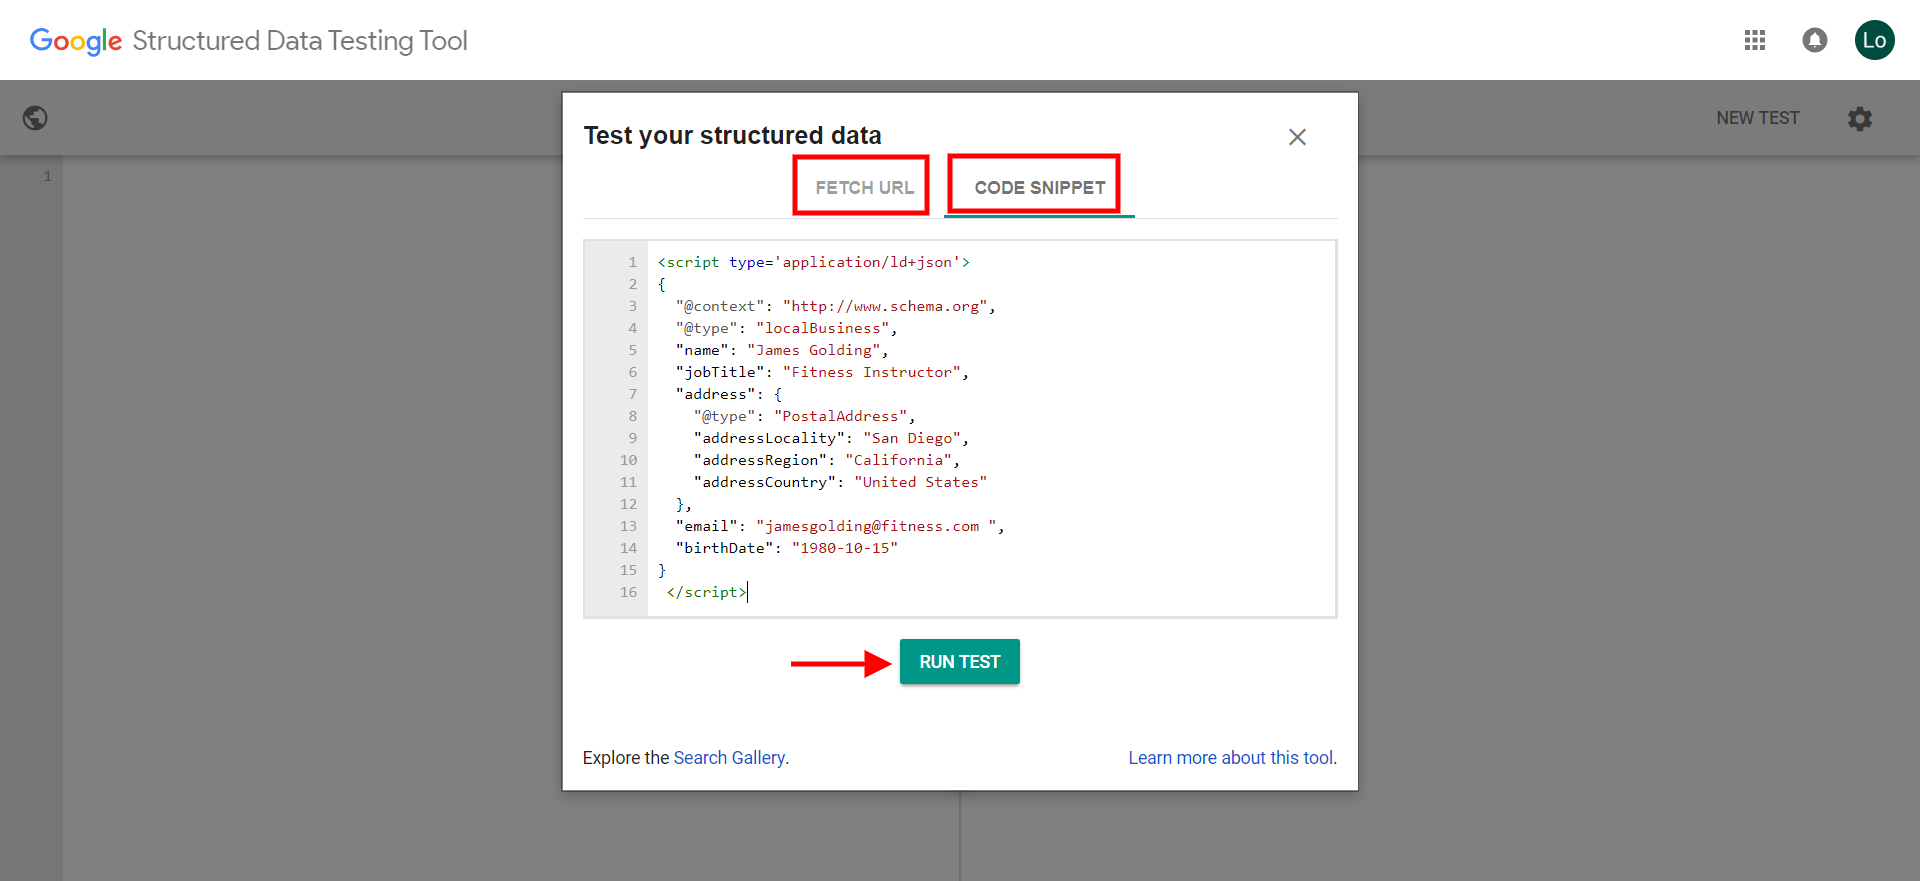 Google Sturctured Data Testing Tool 2